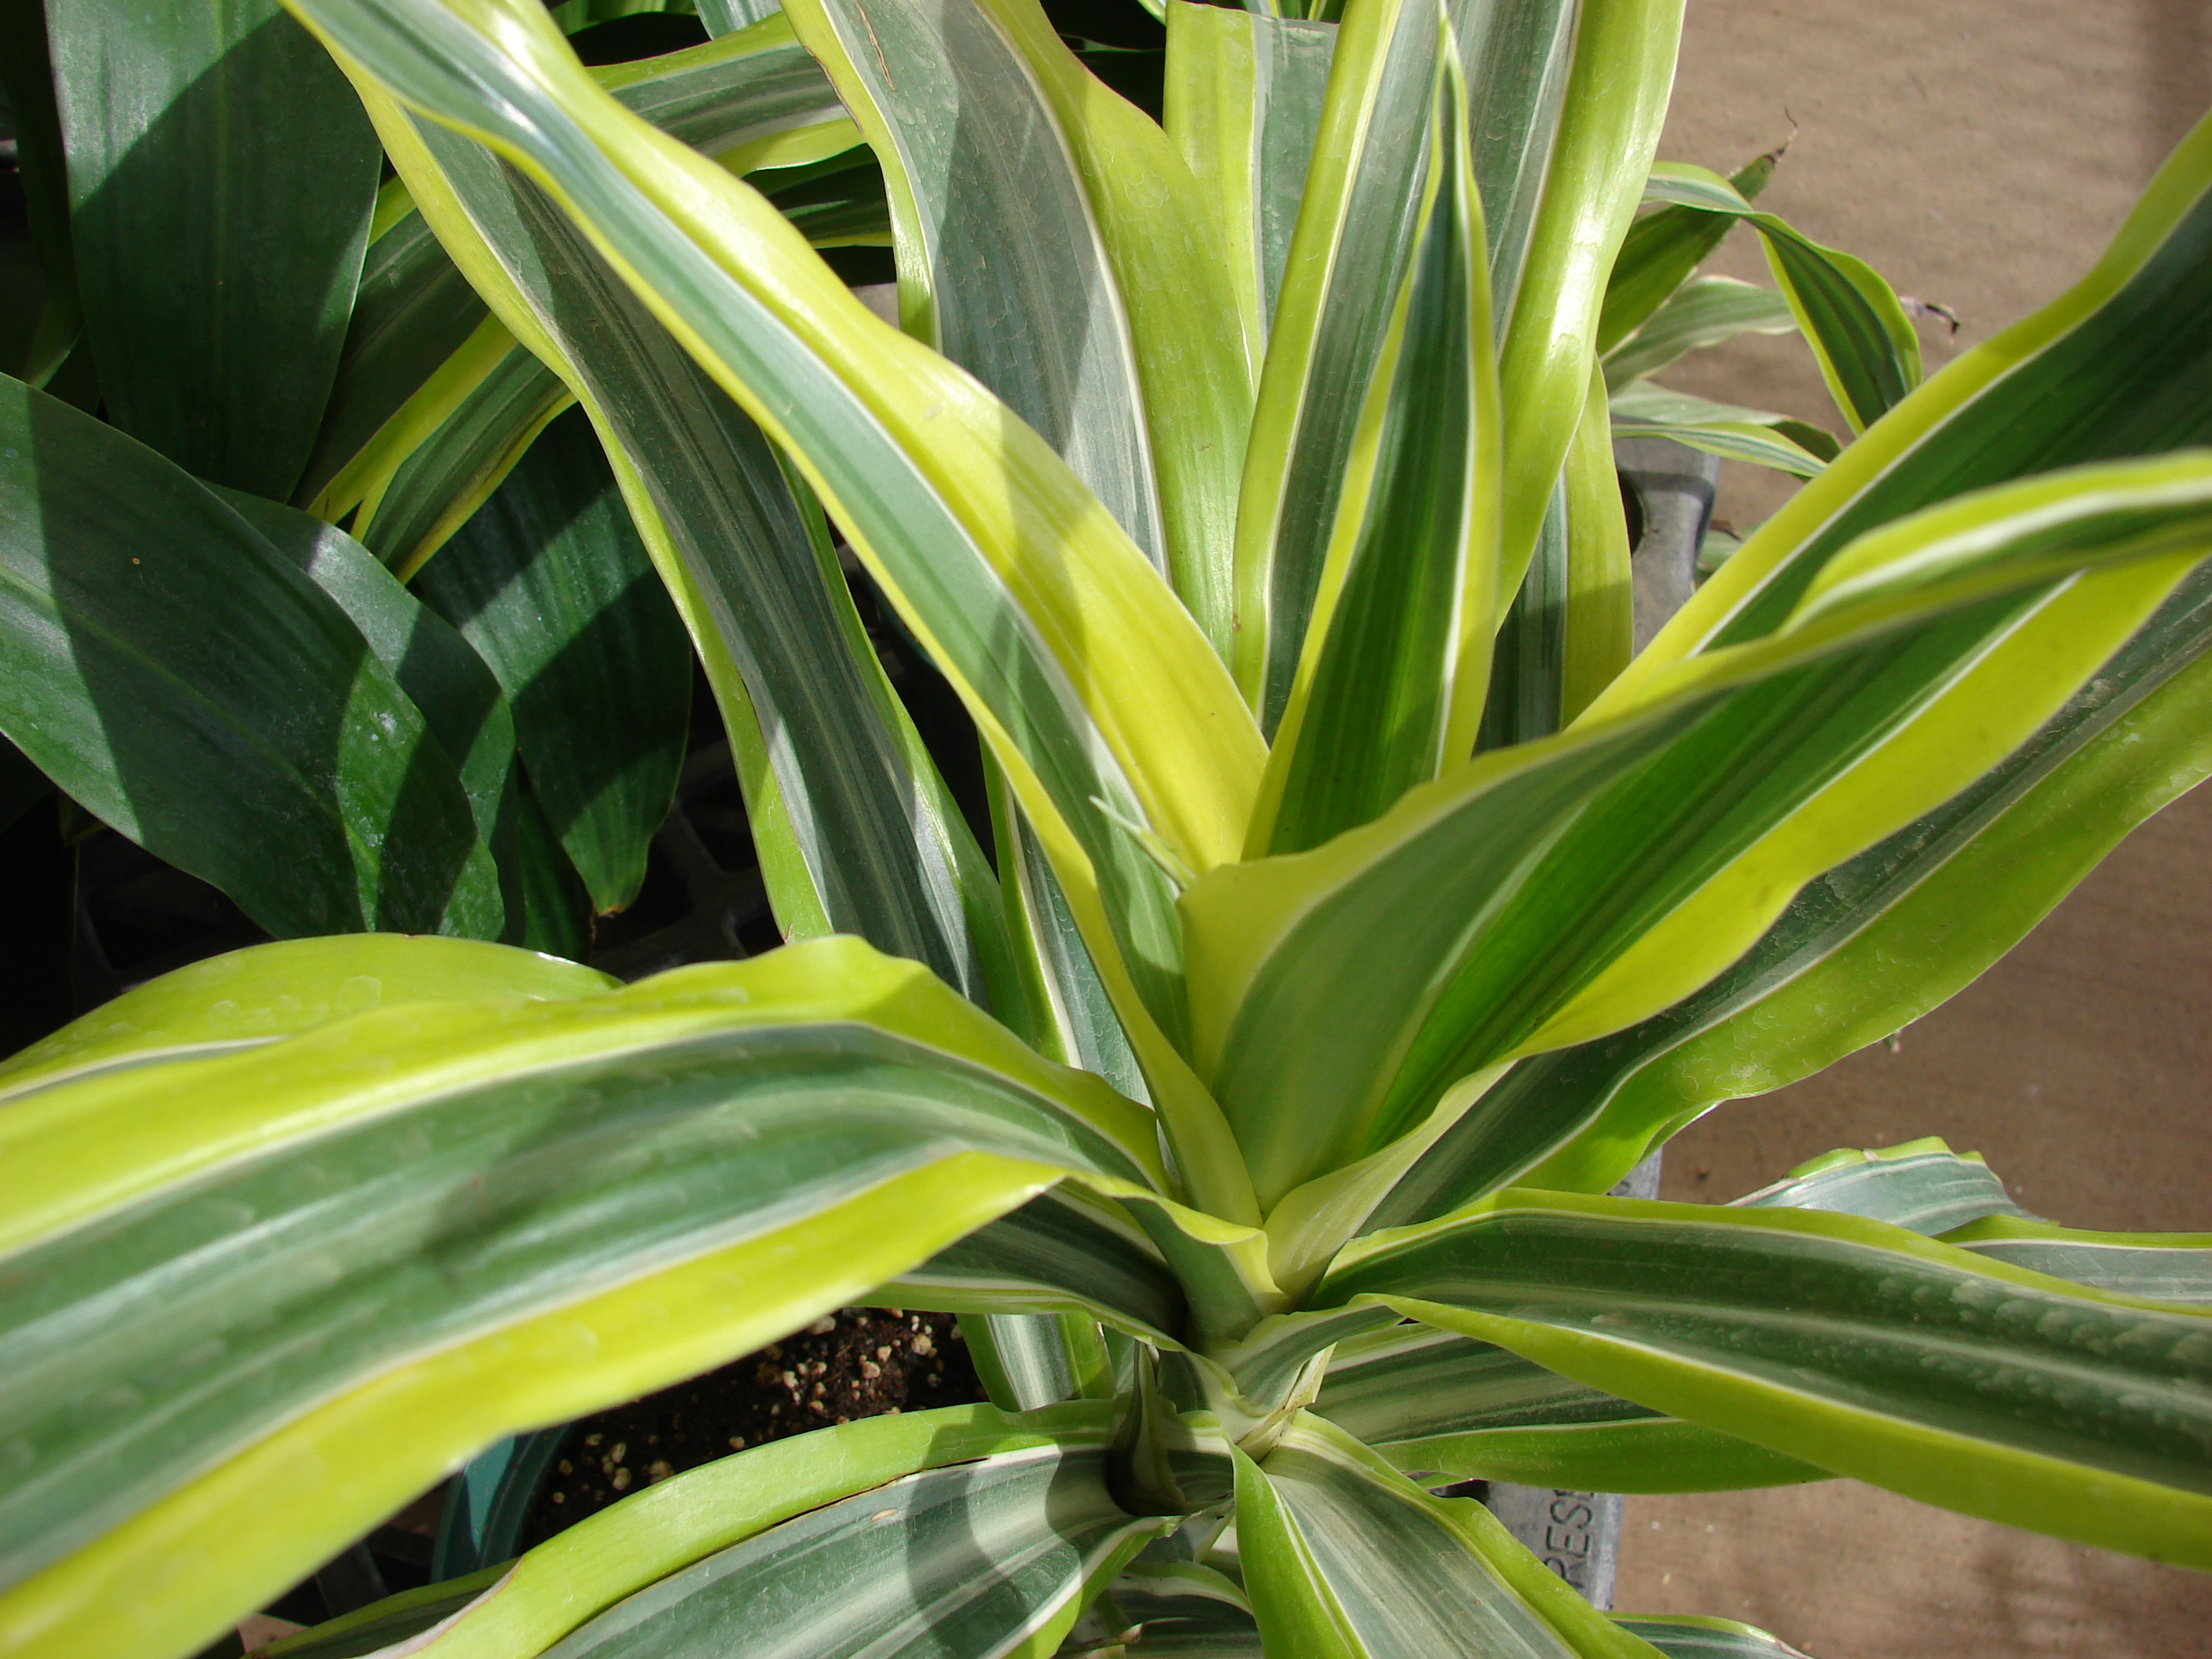 Dracaena Fragrans Lemon Lime Dracaena fragrans.jpg